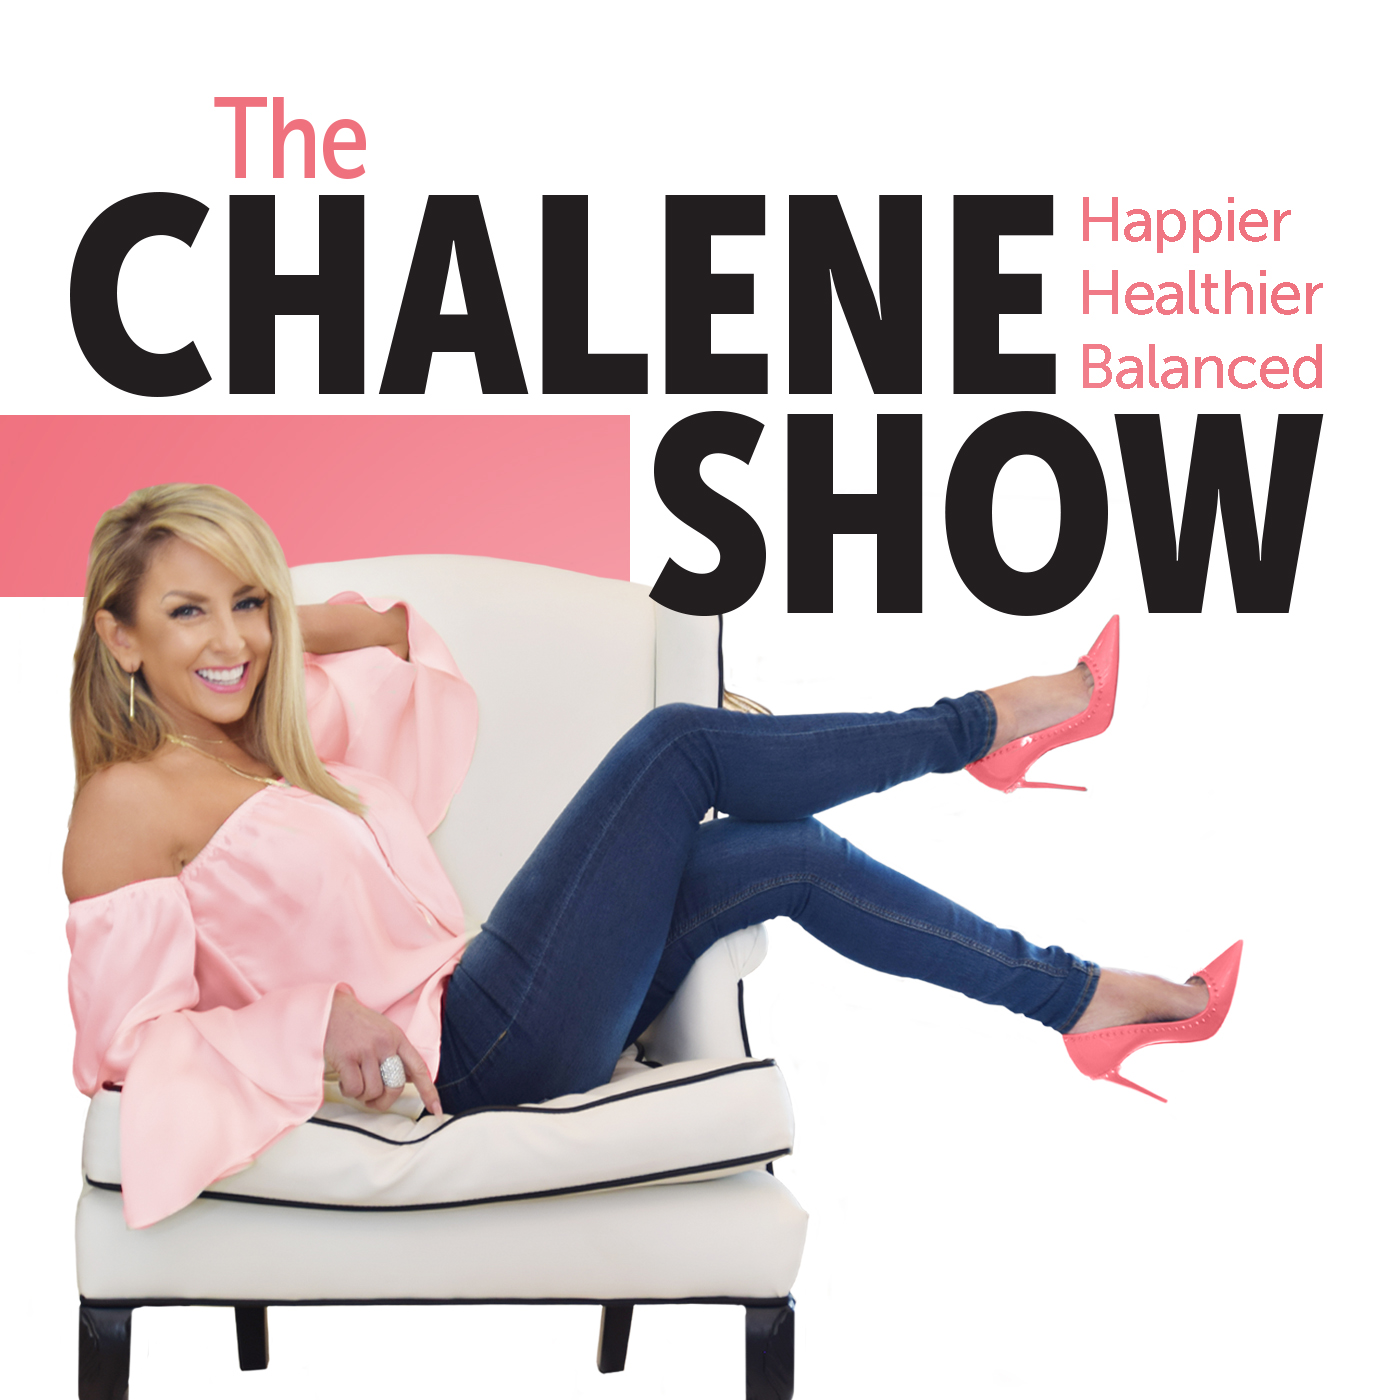 Artwork for Relationship and Love advice Q&A with Chalene and Bret from The Chalene Show Live - 322